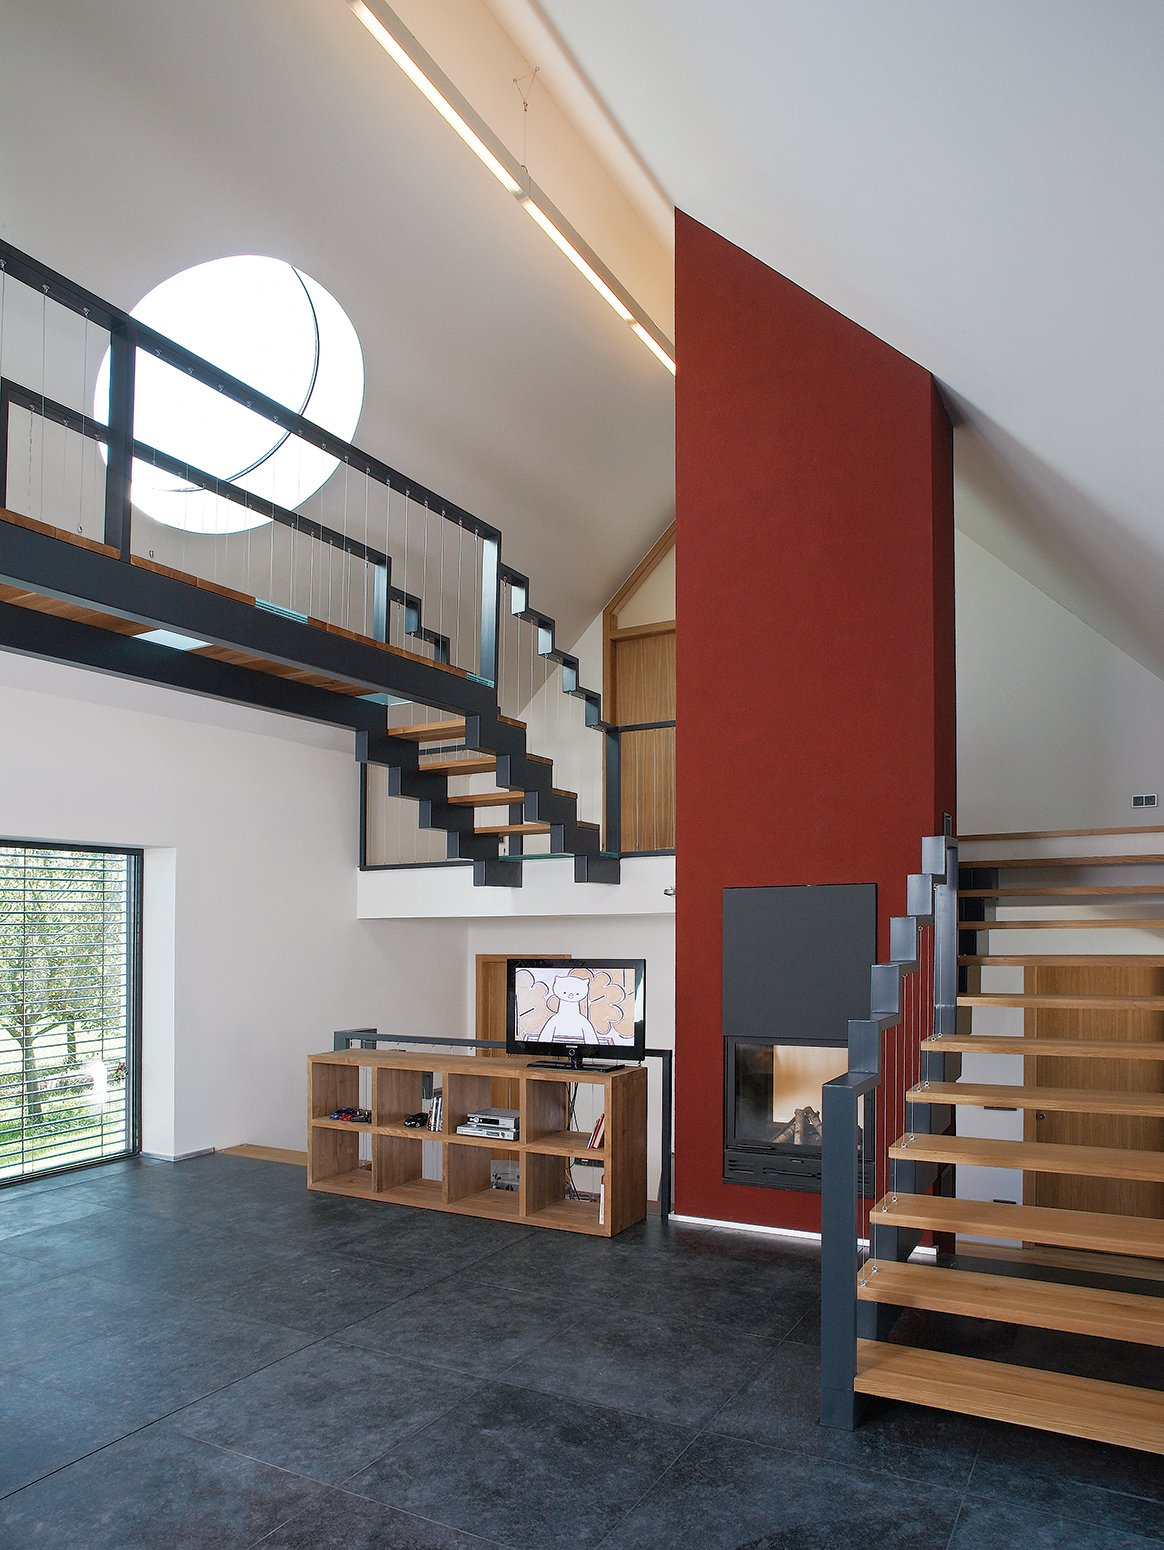 "Circular ""sun disks"" cut into the slanted roof create light shafts that move throughout the day, casting angular shadows as they pass over the steel staircases and catwalk. Tagged: Staircase, Metal Railing, and Wood Tread.  Photo 2 of 4 in A Striking Bohemian Geothermal Home"